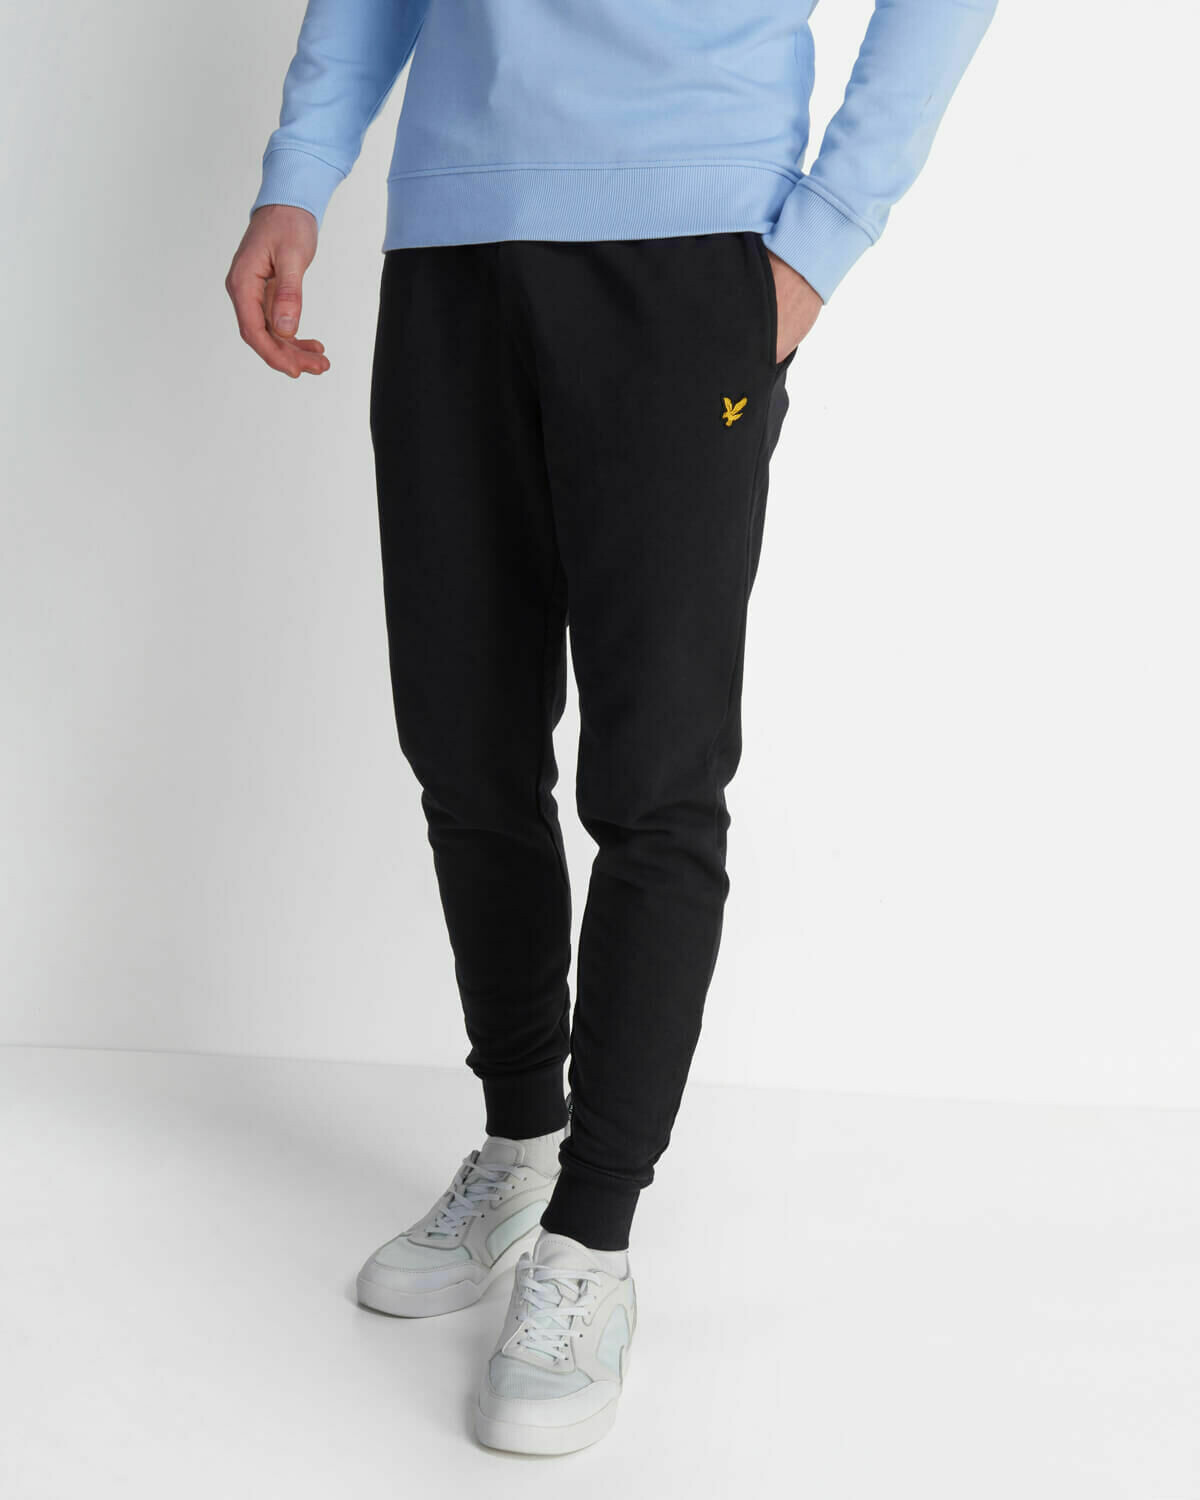 Lyle & Scott | Skinny Sweatpants - Jet Black